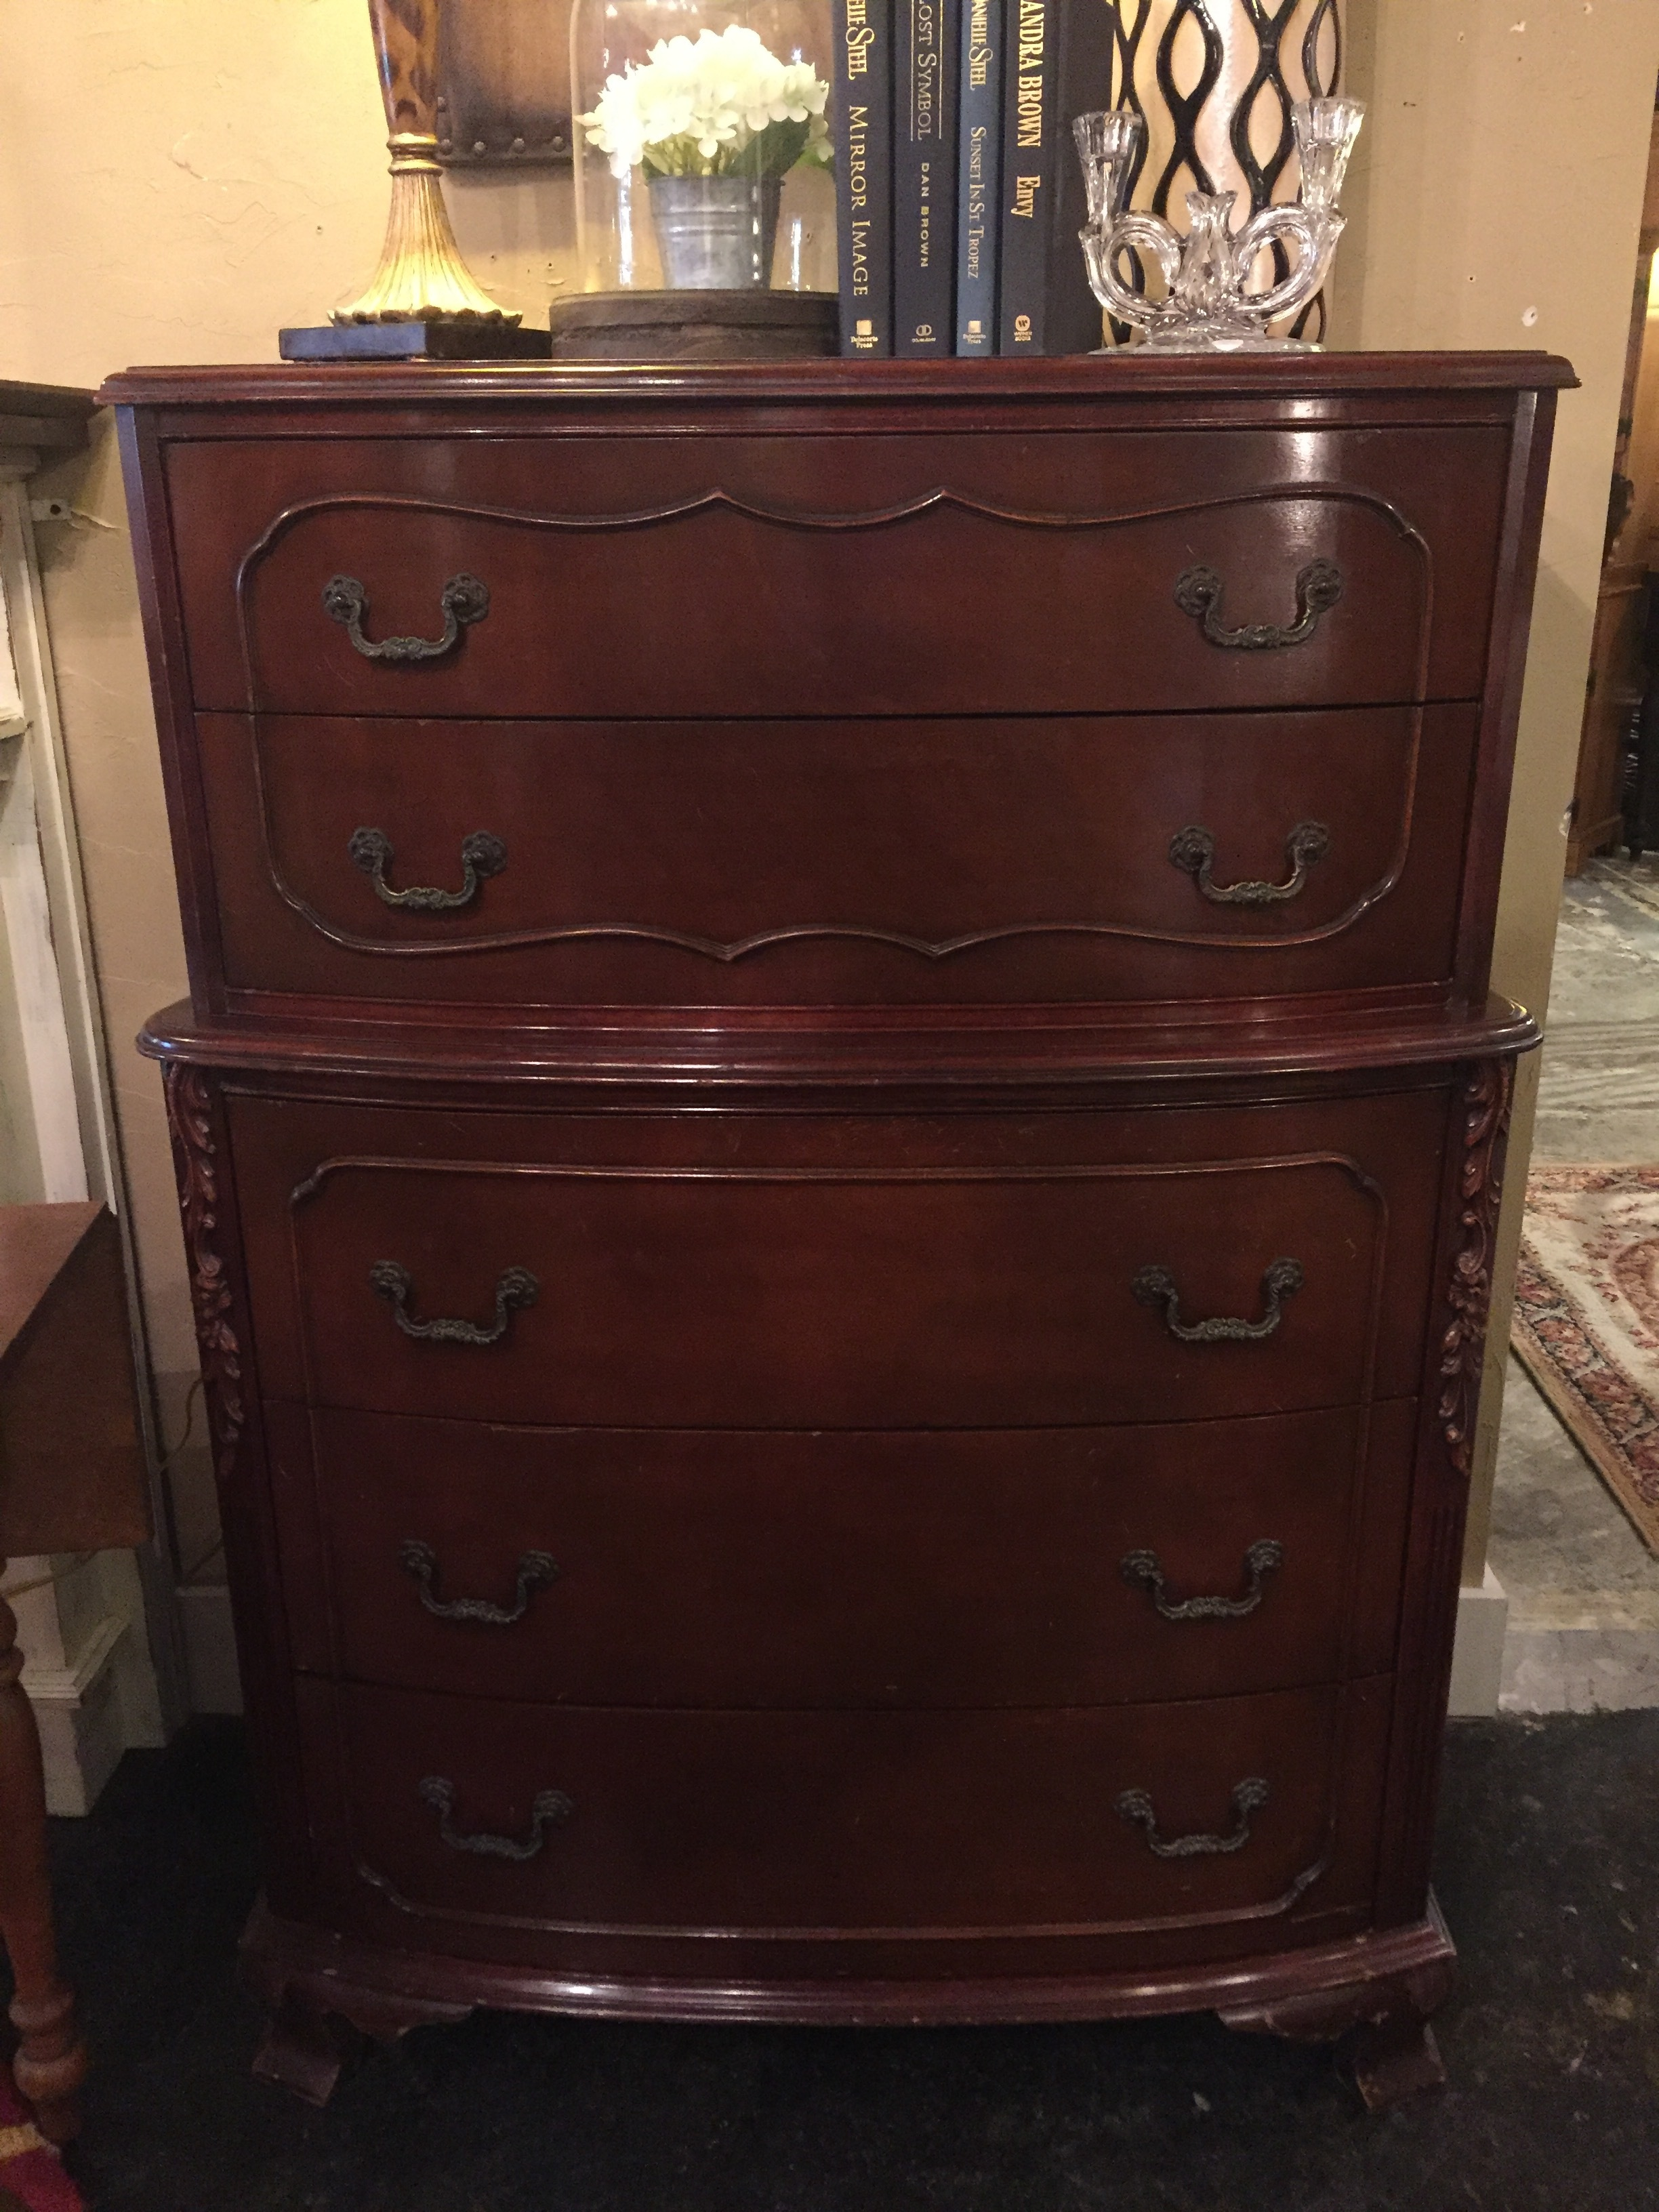 Chest of Drawers $319.95 - C1021 22727